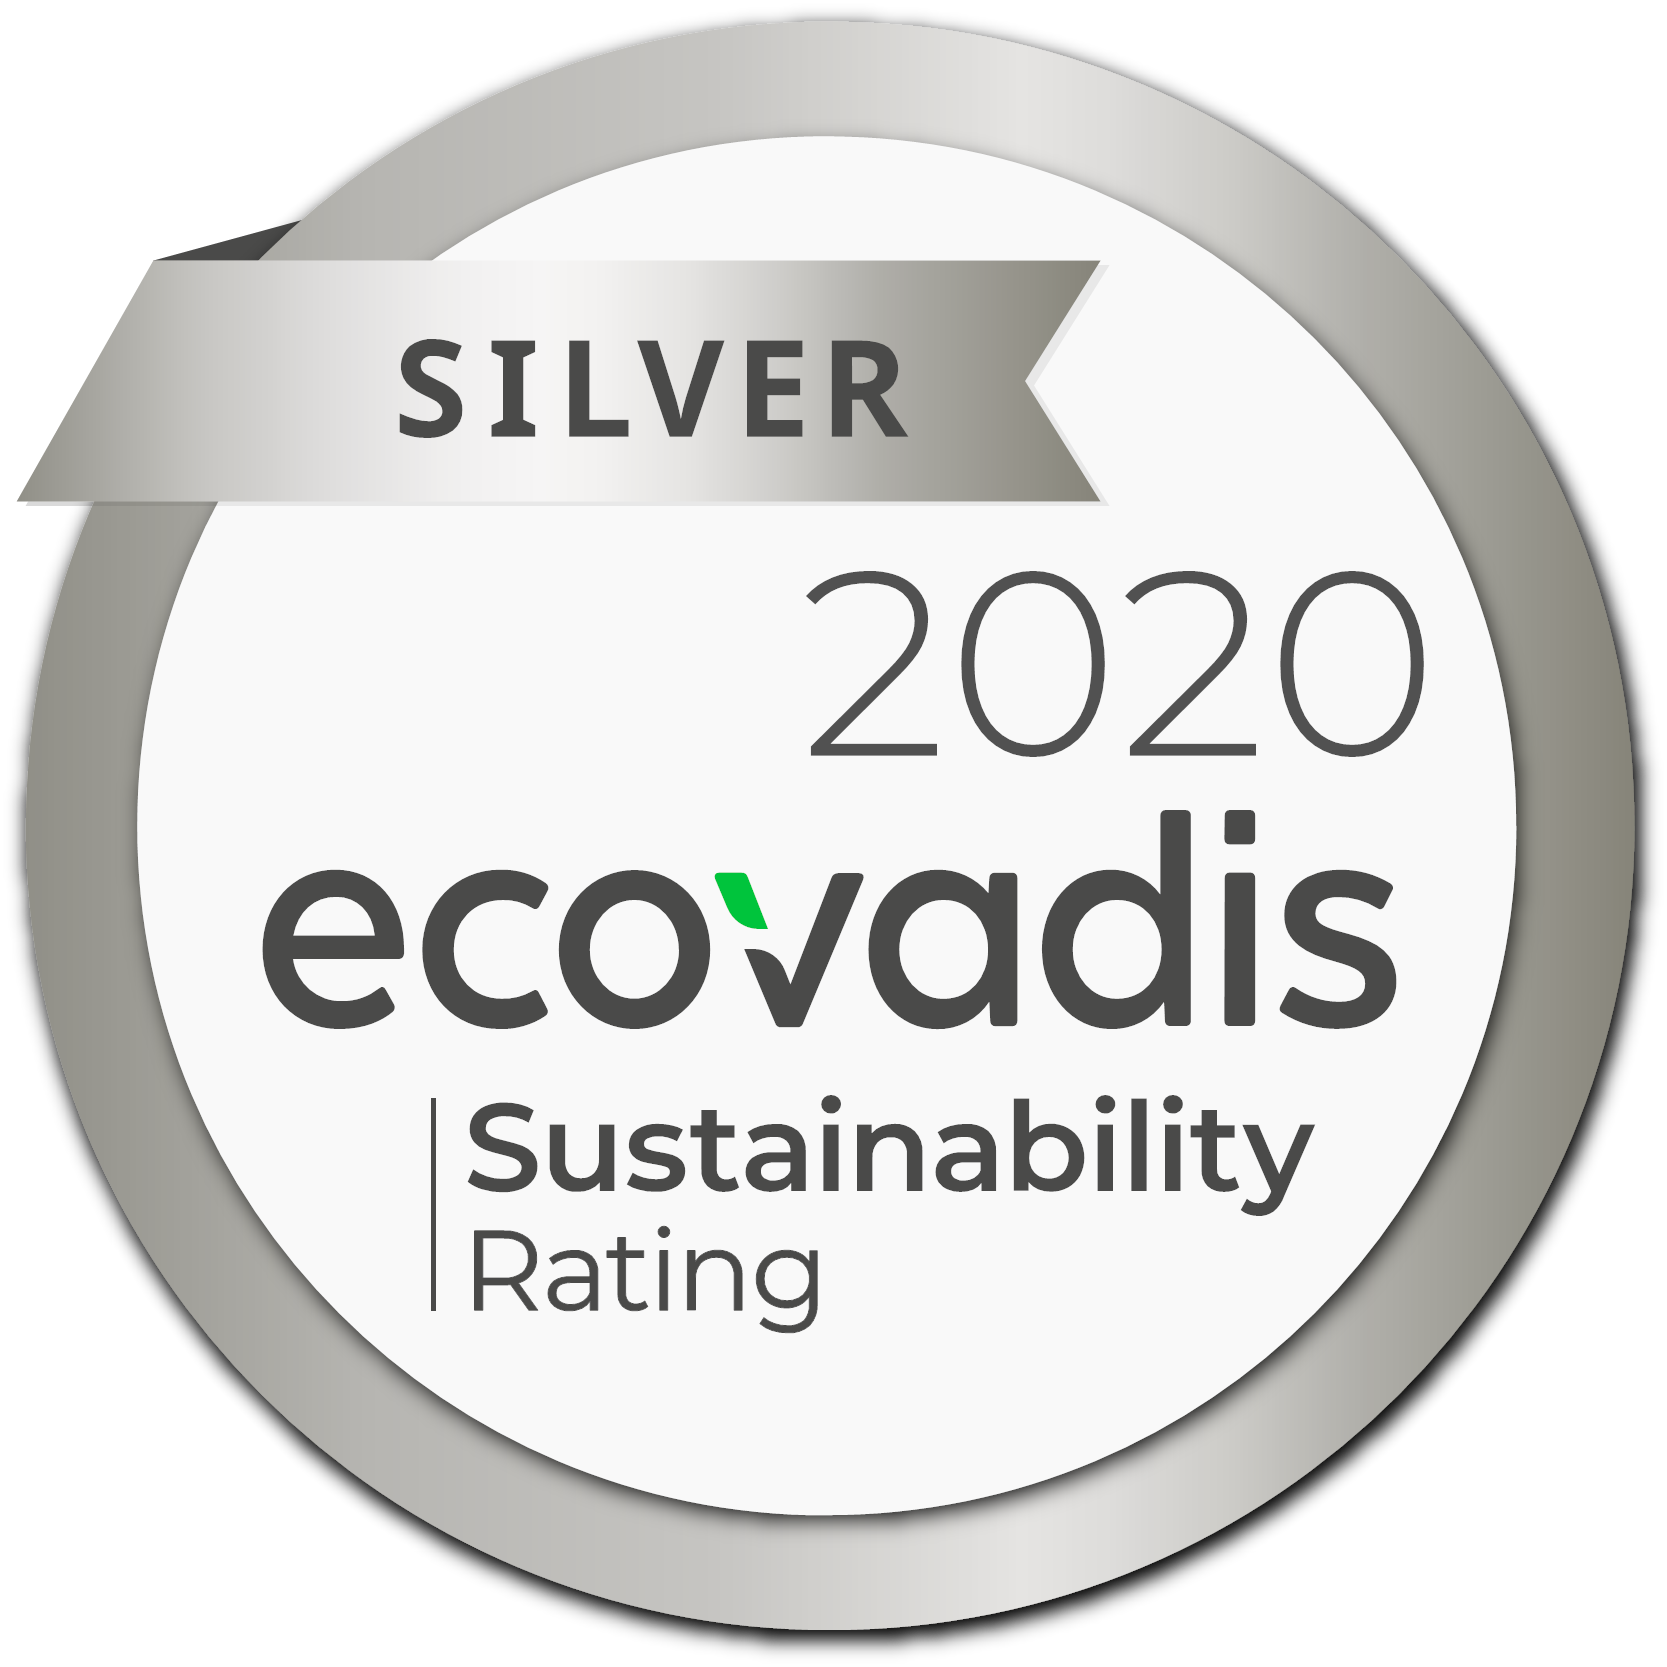 Silver Sustainability Rating